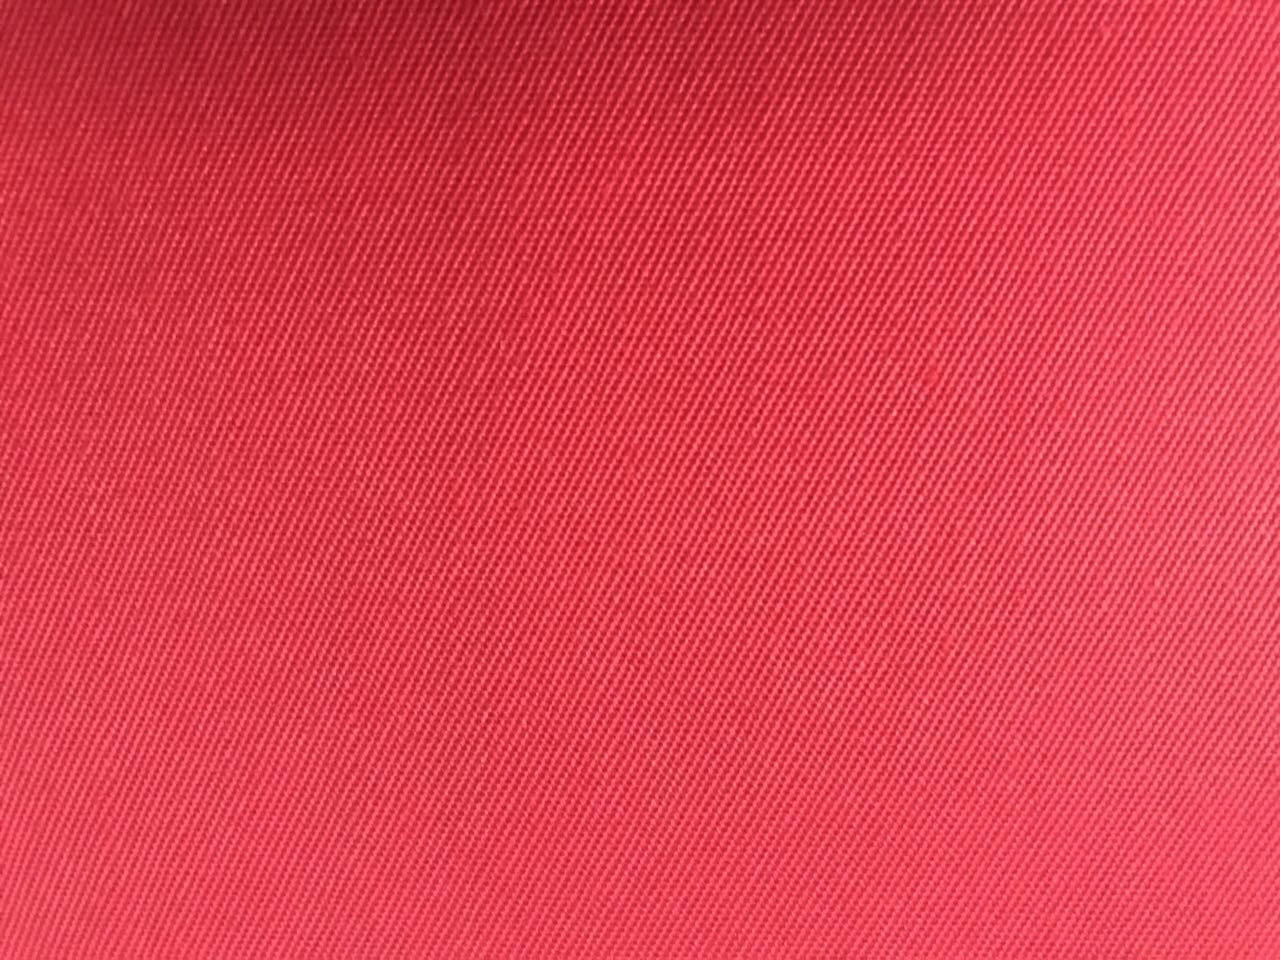 Polyester Cotton Twill Fabric Mercerized 32S